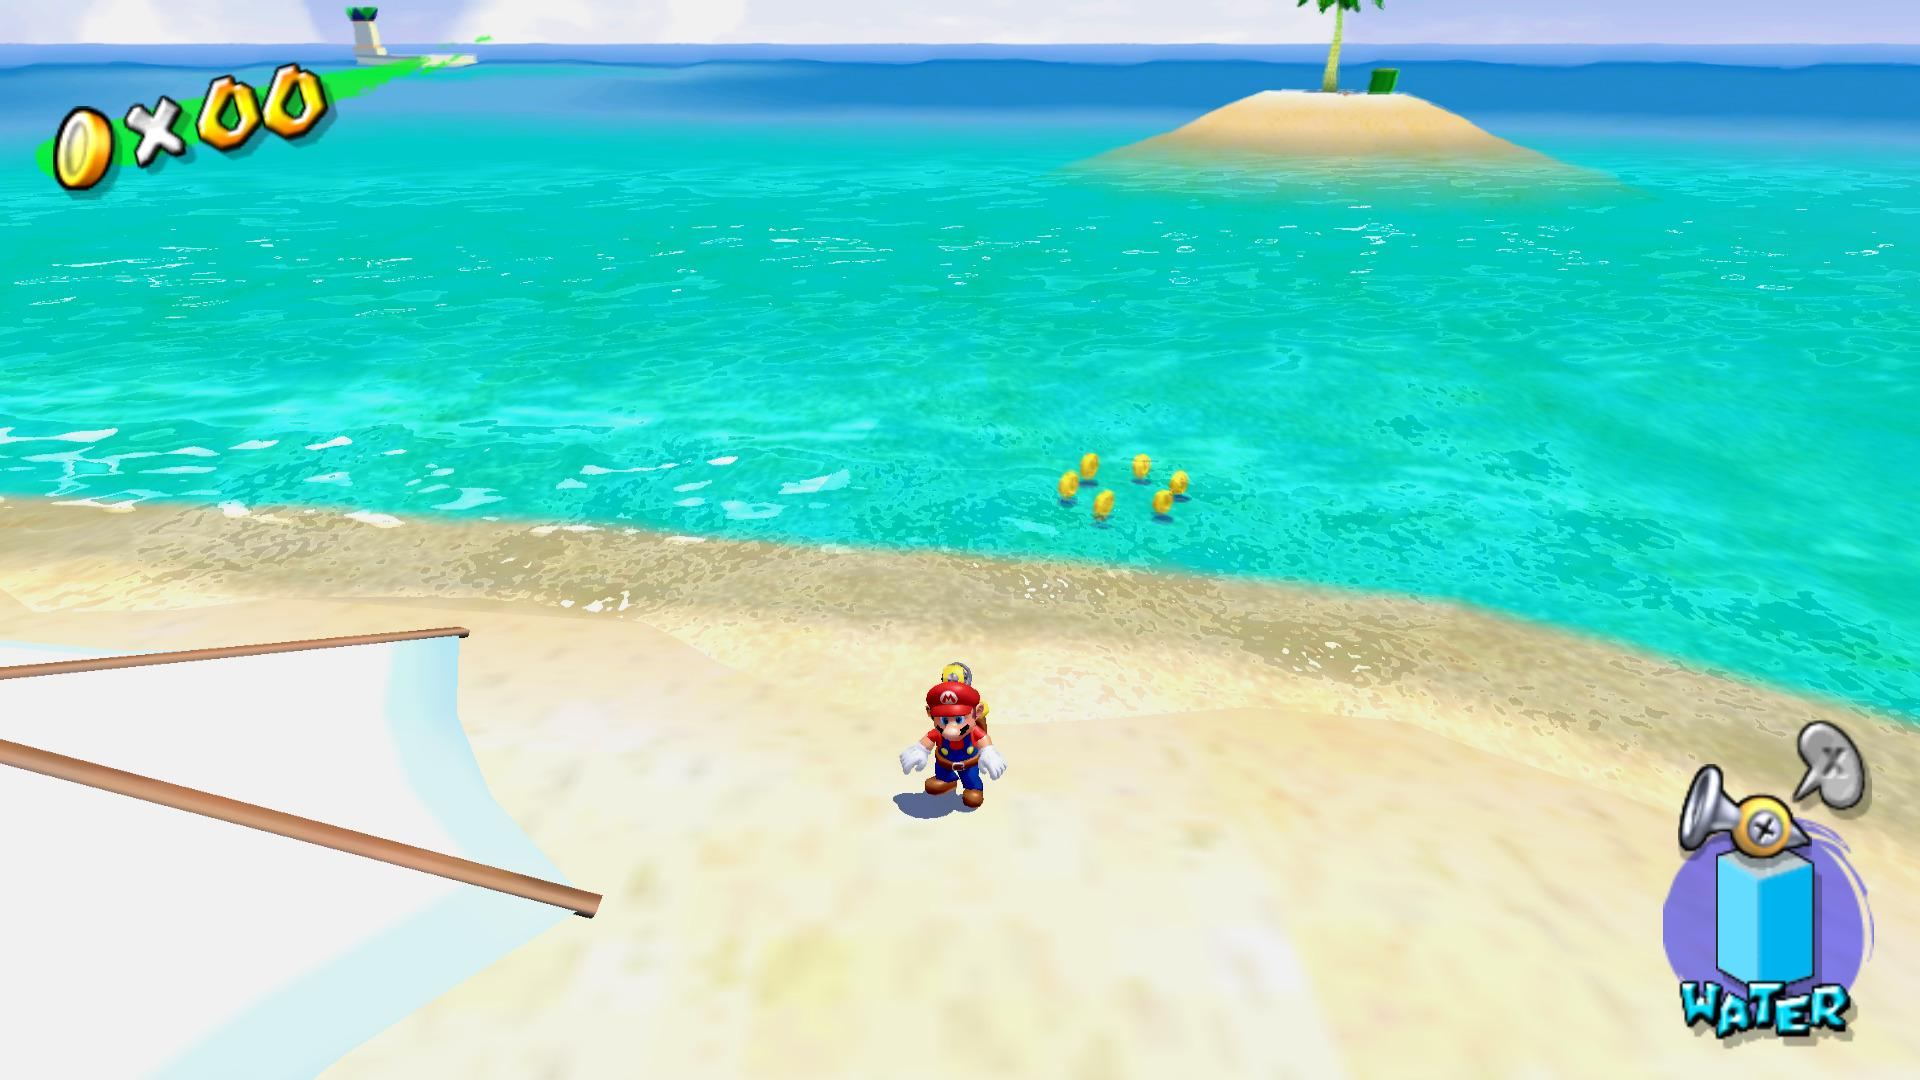 Download Super Mario Sunshine Wallpaper Hd Backgrounds Download